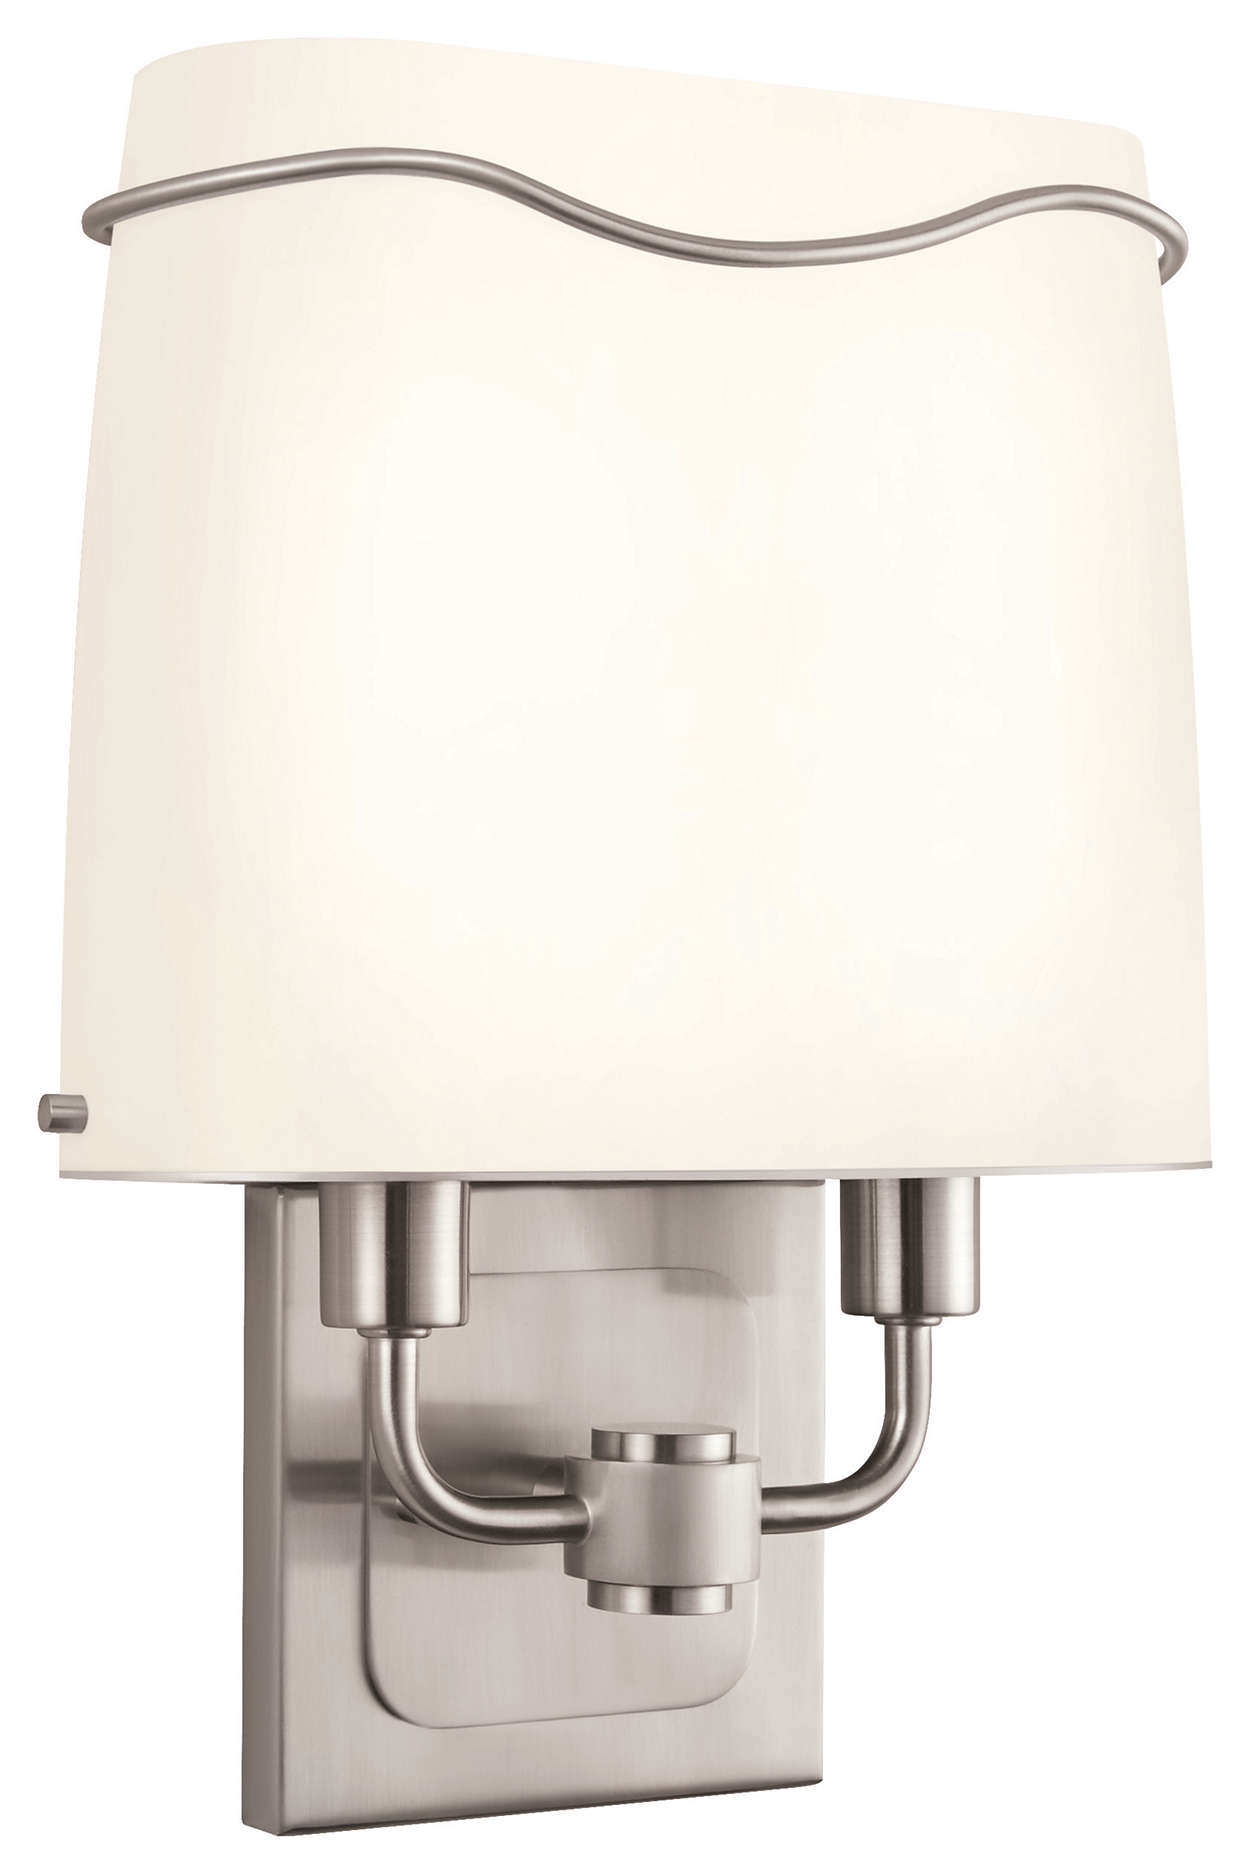 Elgin 1-light Wall in Satin Nickel finish